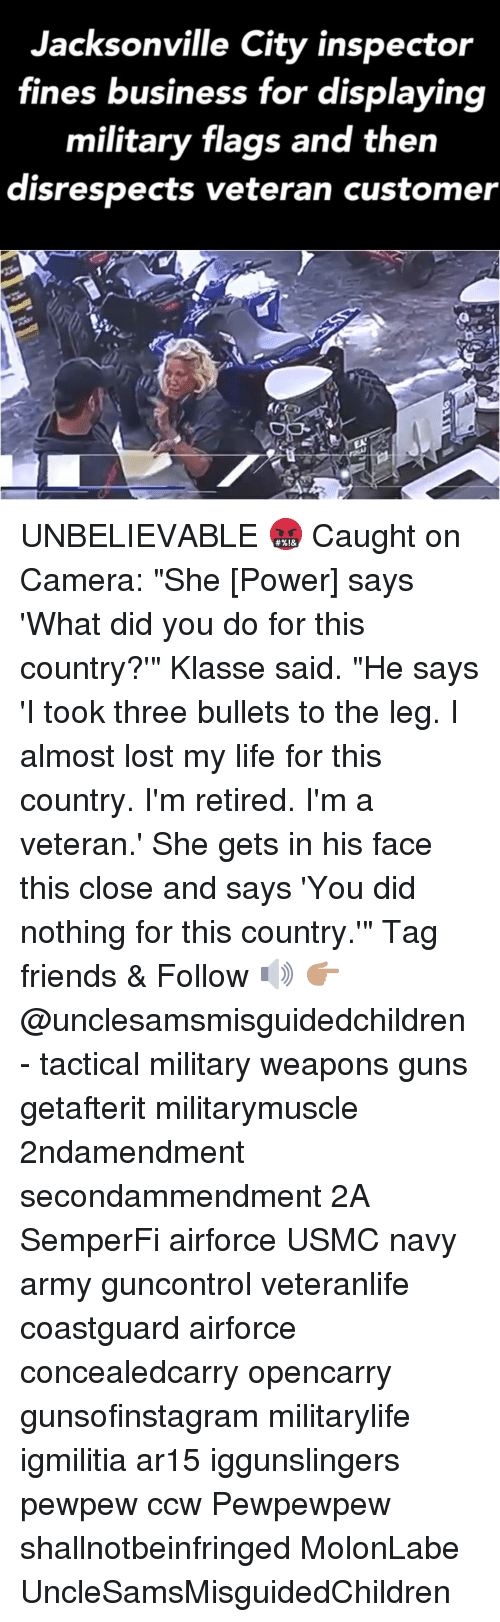 """caught on camera: Jacksonville City inspector  fines business for displaying  military flags and then  disrespects veteran customer UNBELIEVABLE 🤬 Caught on Camera: """"She [Power] says 'What did you do for this country?'"""" Klasse said. """"He says 'I took three bullets to the leg. I almost lost my life for this country. I'm retired. I'm a veteran.' She gets in his face this close and says 'You did nothing for this country.'"""" Tag friends & Follow 🔊 👉🏽 @unclesamsmisguidedchildren - tactical military weapons guns getafterit militarymuscle 2ndamendment secondammendment 2A SemperFi airforce USMC navy army guncontrol veteranlife coastguard airforce concealedcarry opencarry gunsofinstagram militarylife igmilitia ar15 iggunslingers pewpew ccw Pewpewpew shallnotbeinfringed MolonLabe UncleSamsMisguidedChildren"""